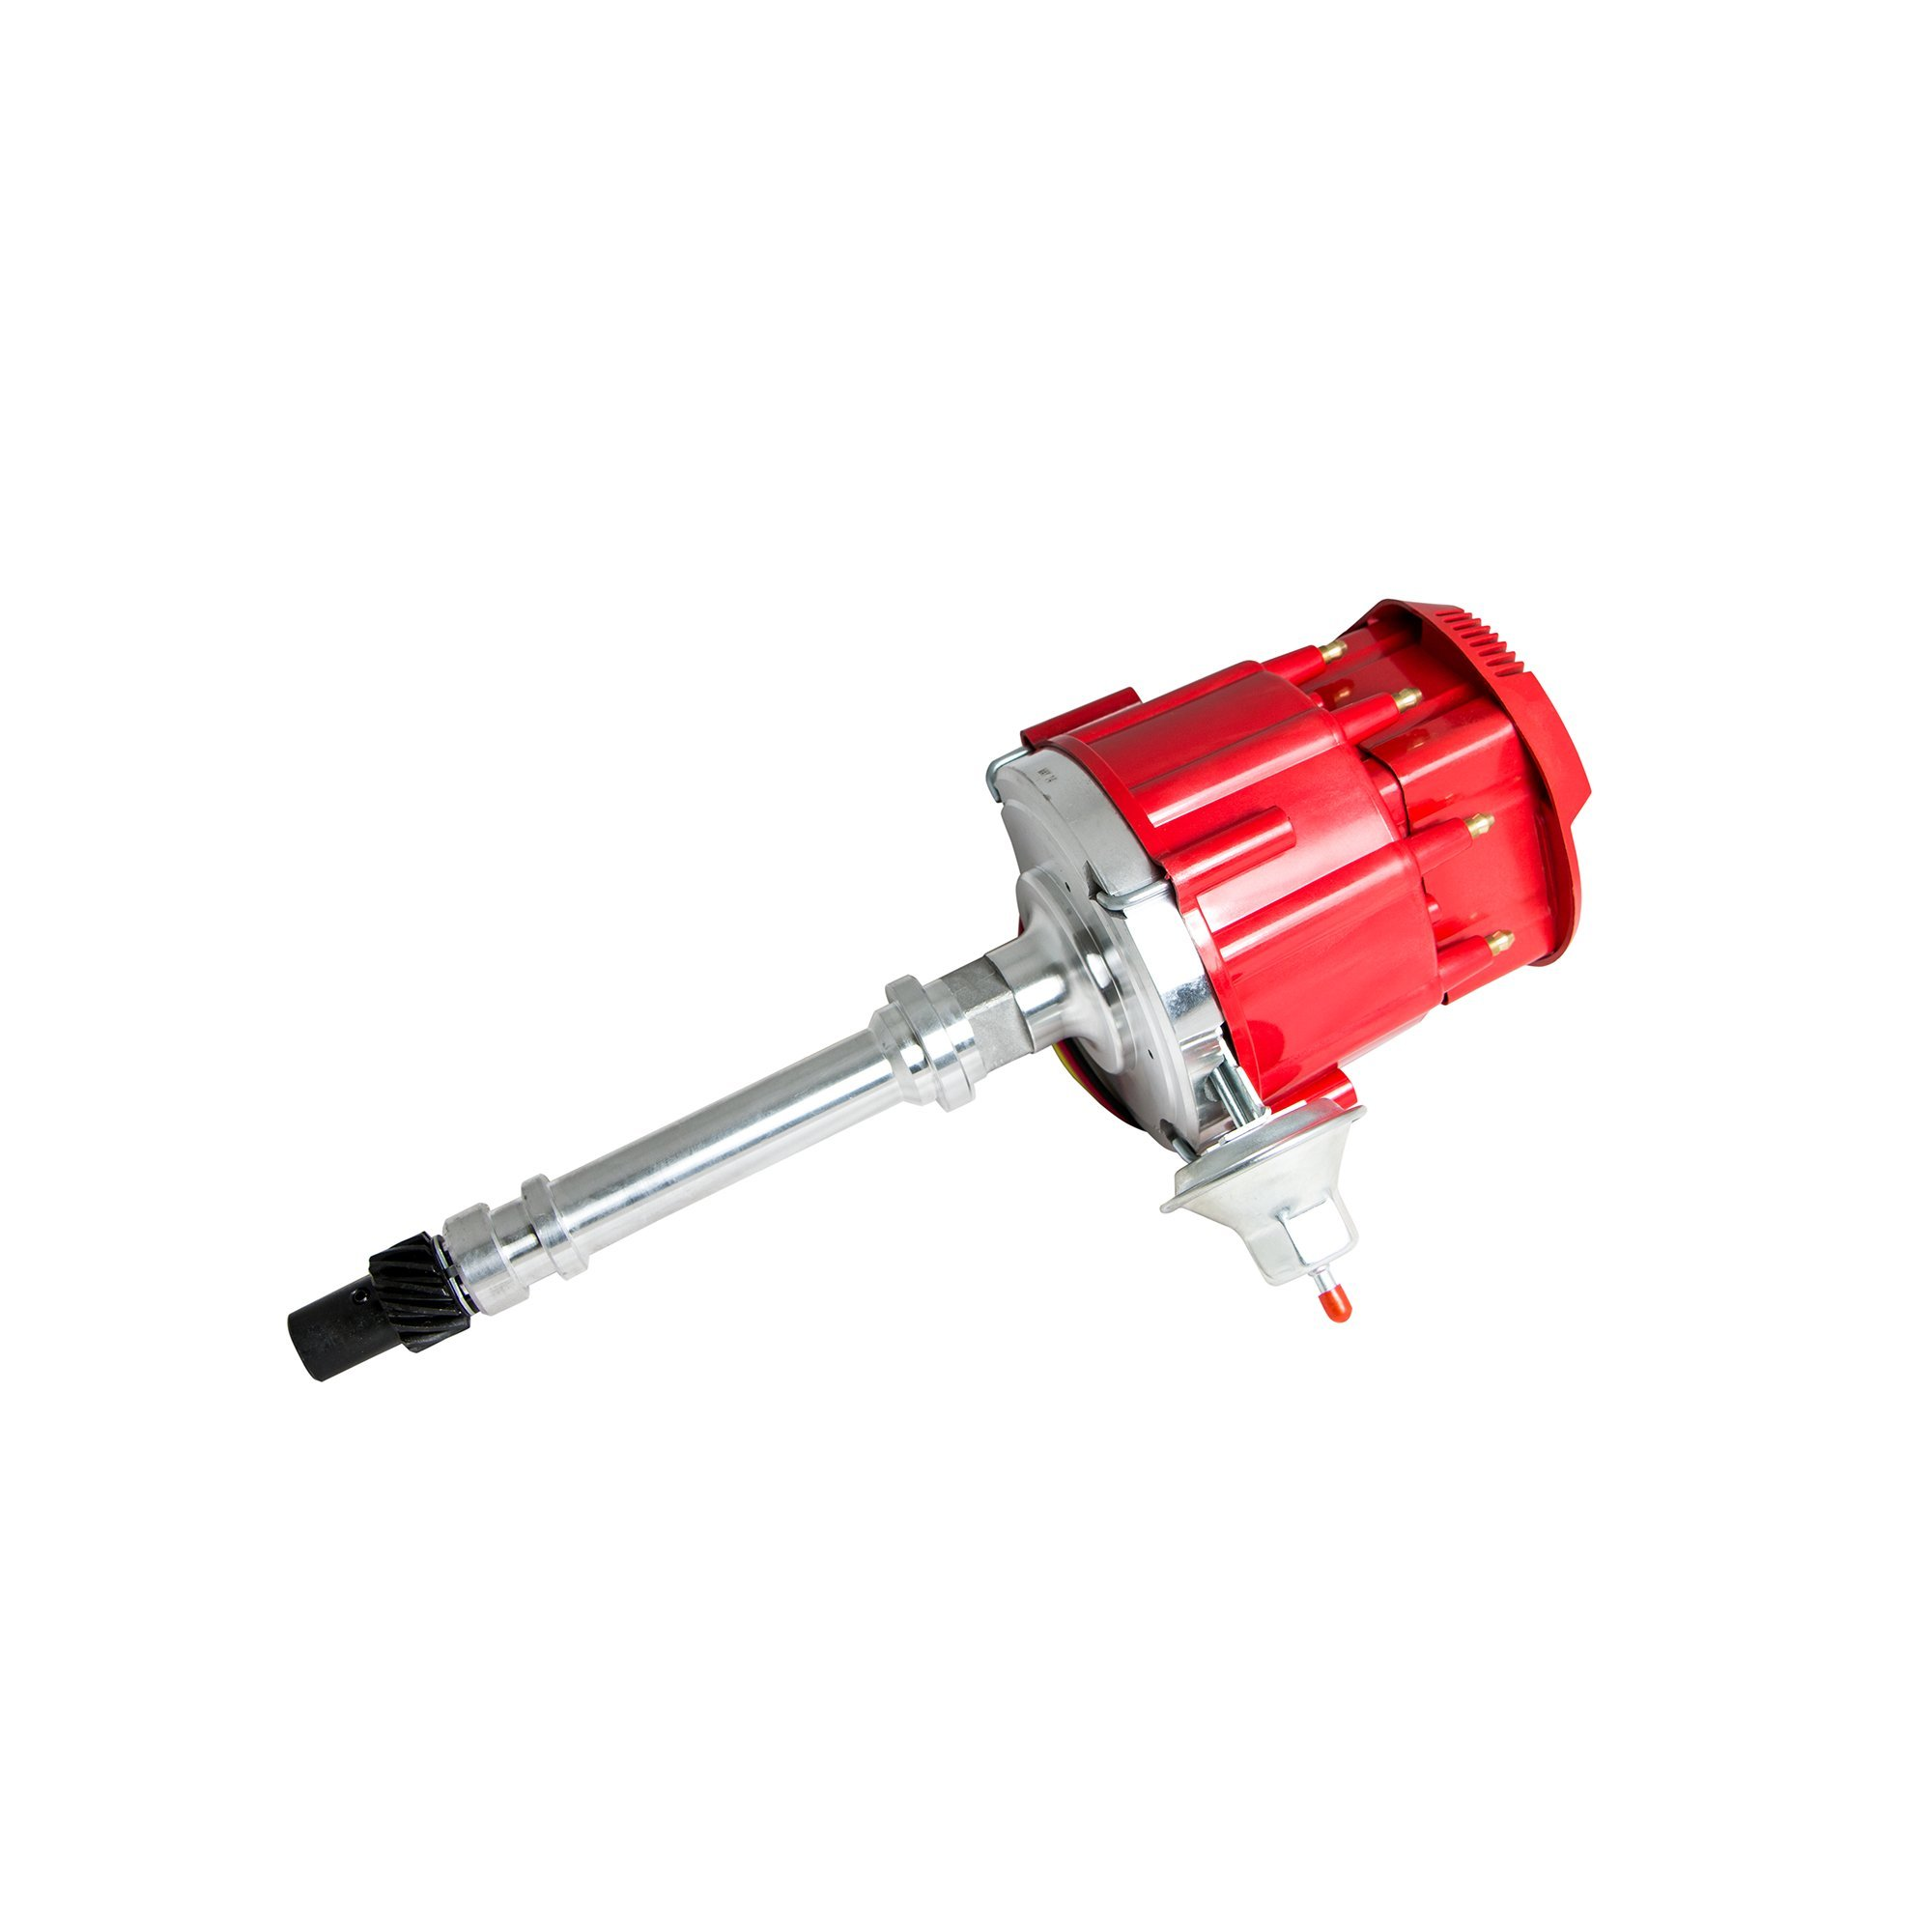 Top Street Performance JM6500R HEI Distributor with Red Flat-Cover Super Cap (65K Volt Coil) by Top Street Performance